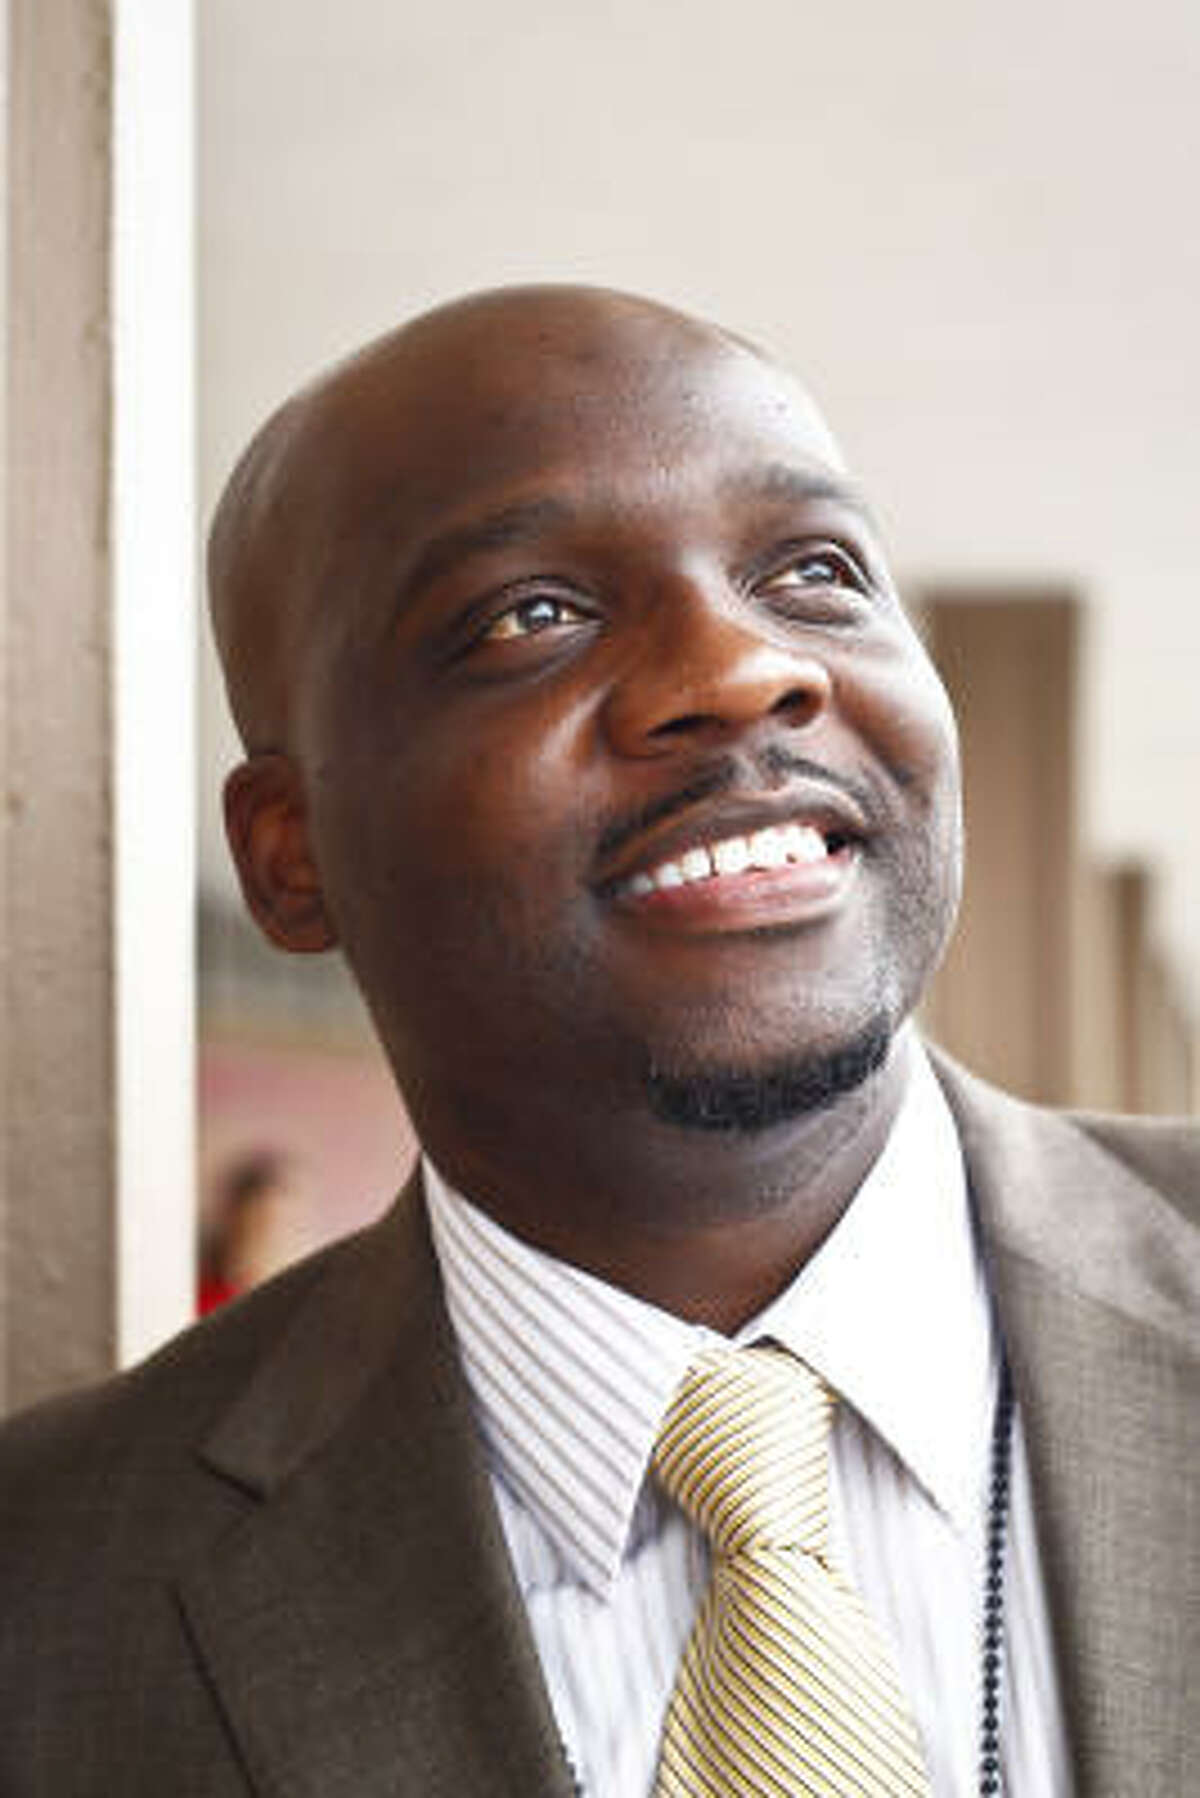 Lannie Milon Jr., the new principal of HISD's Thomas Middle School, has given his campus the feel of a university.